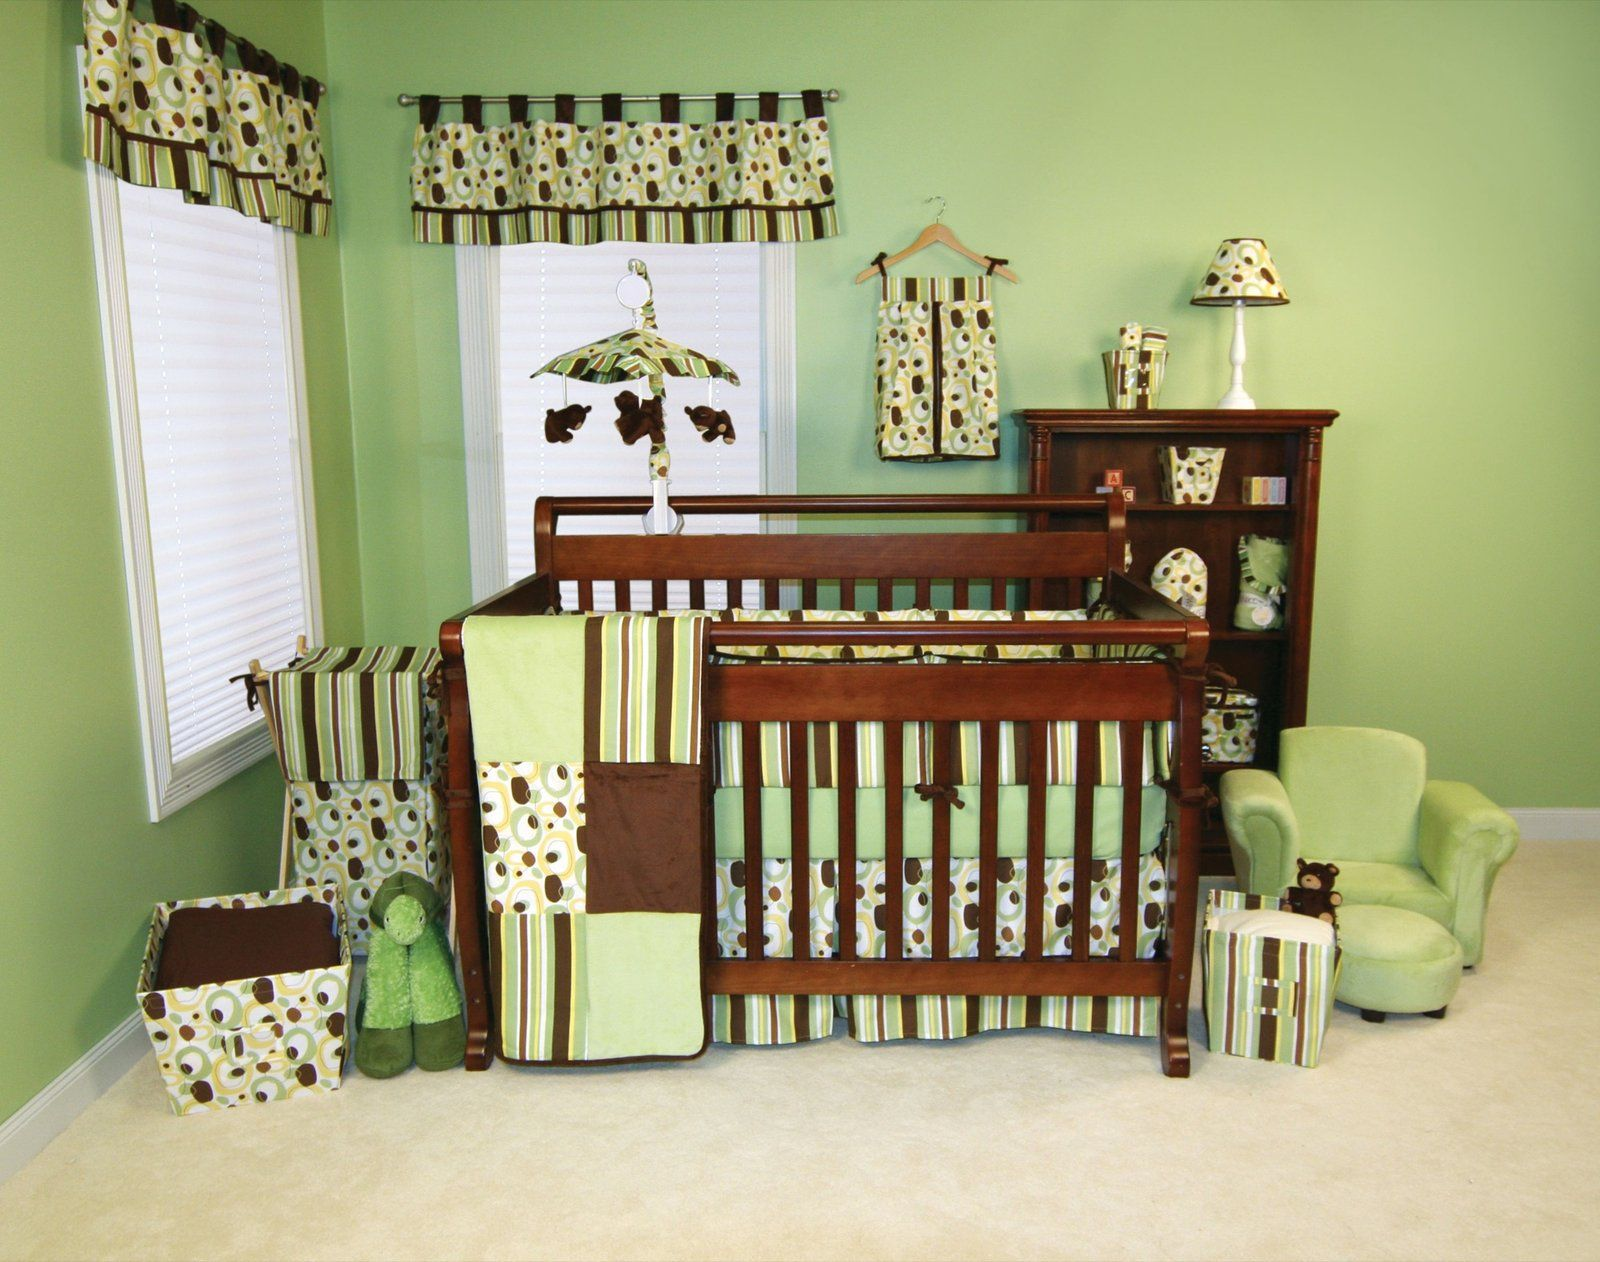 Baby room decorations - Themes For Baby Nurserys Green Theme Baby Room Decor For Your Baby Nursery Ideas 1600x1262